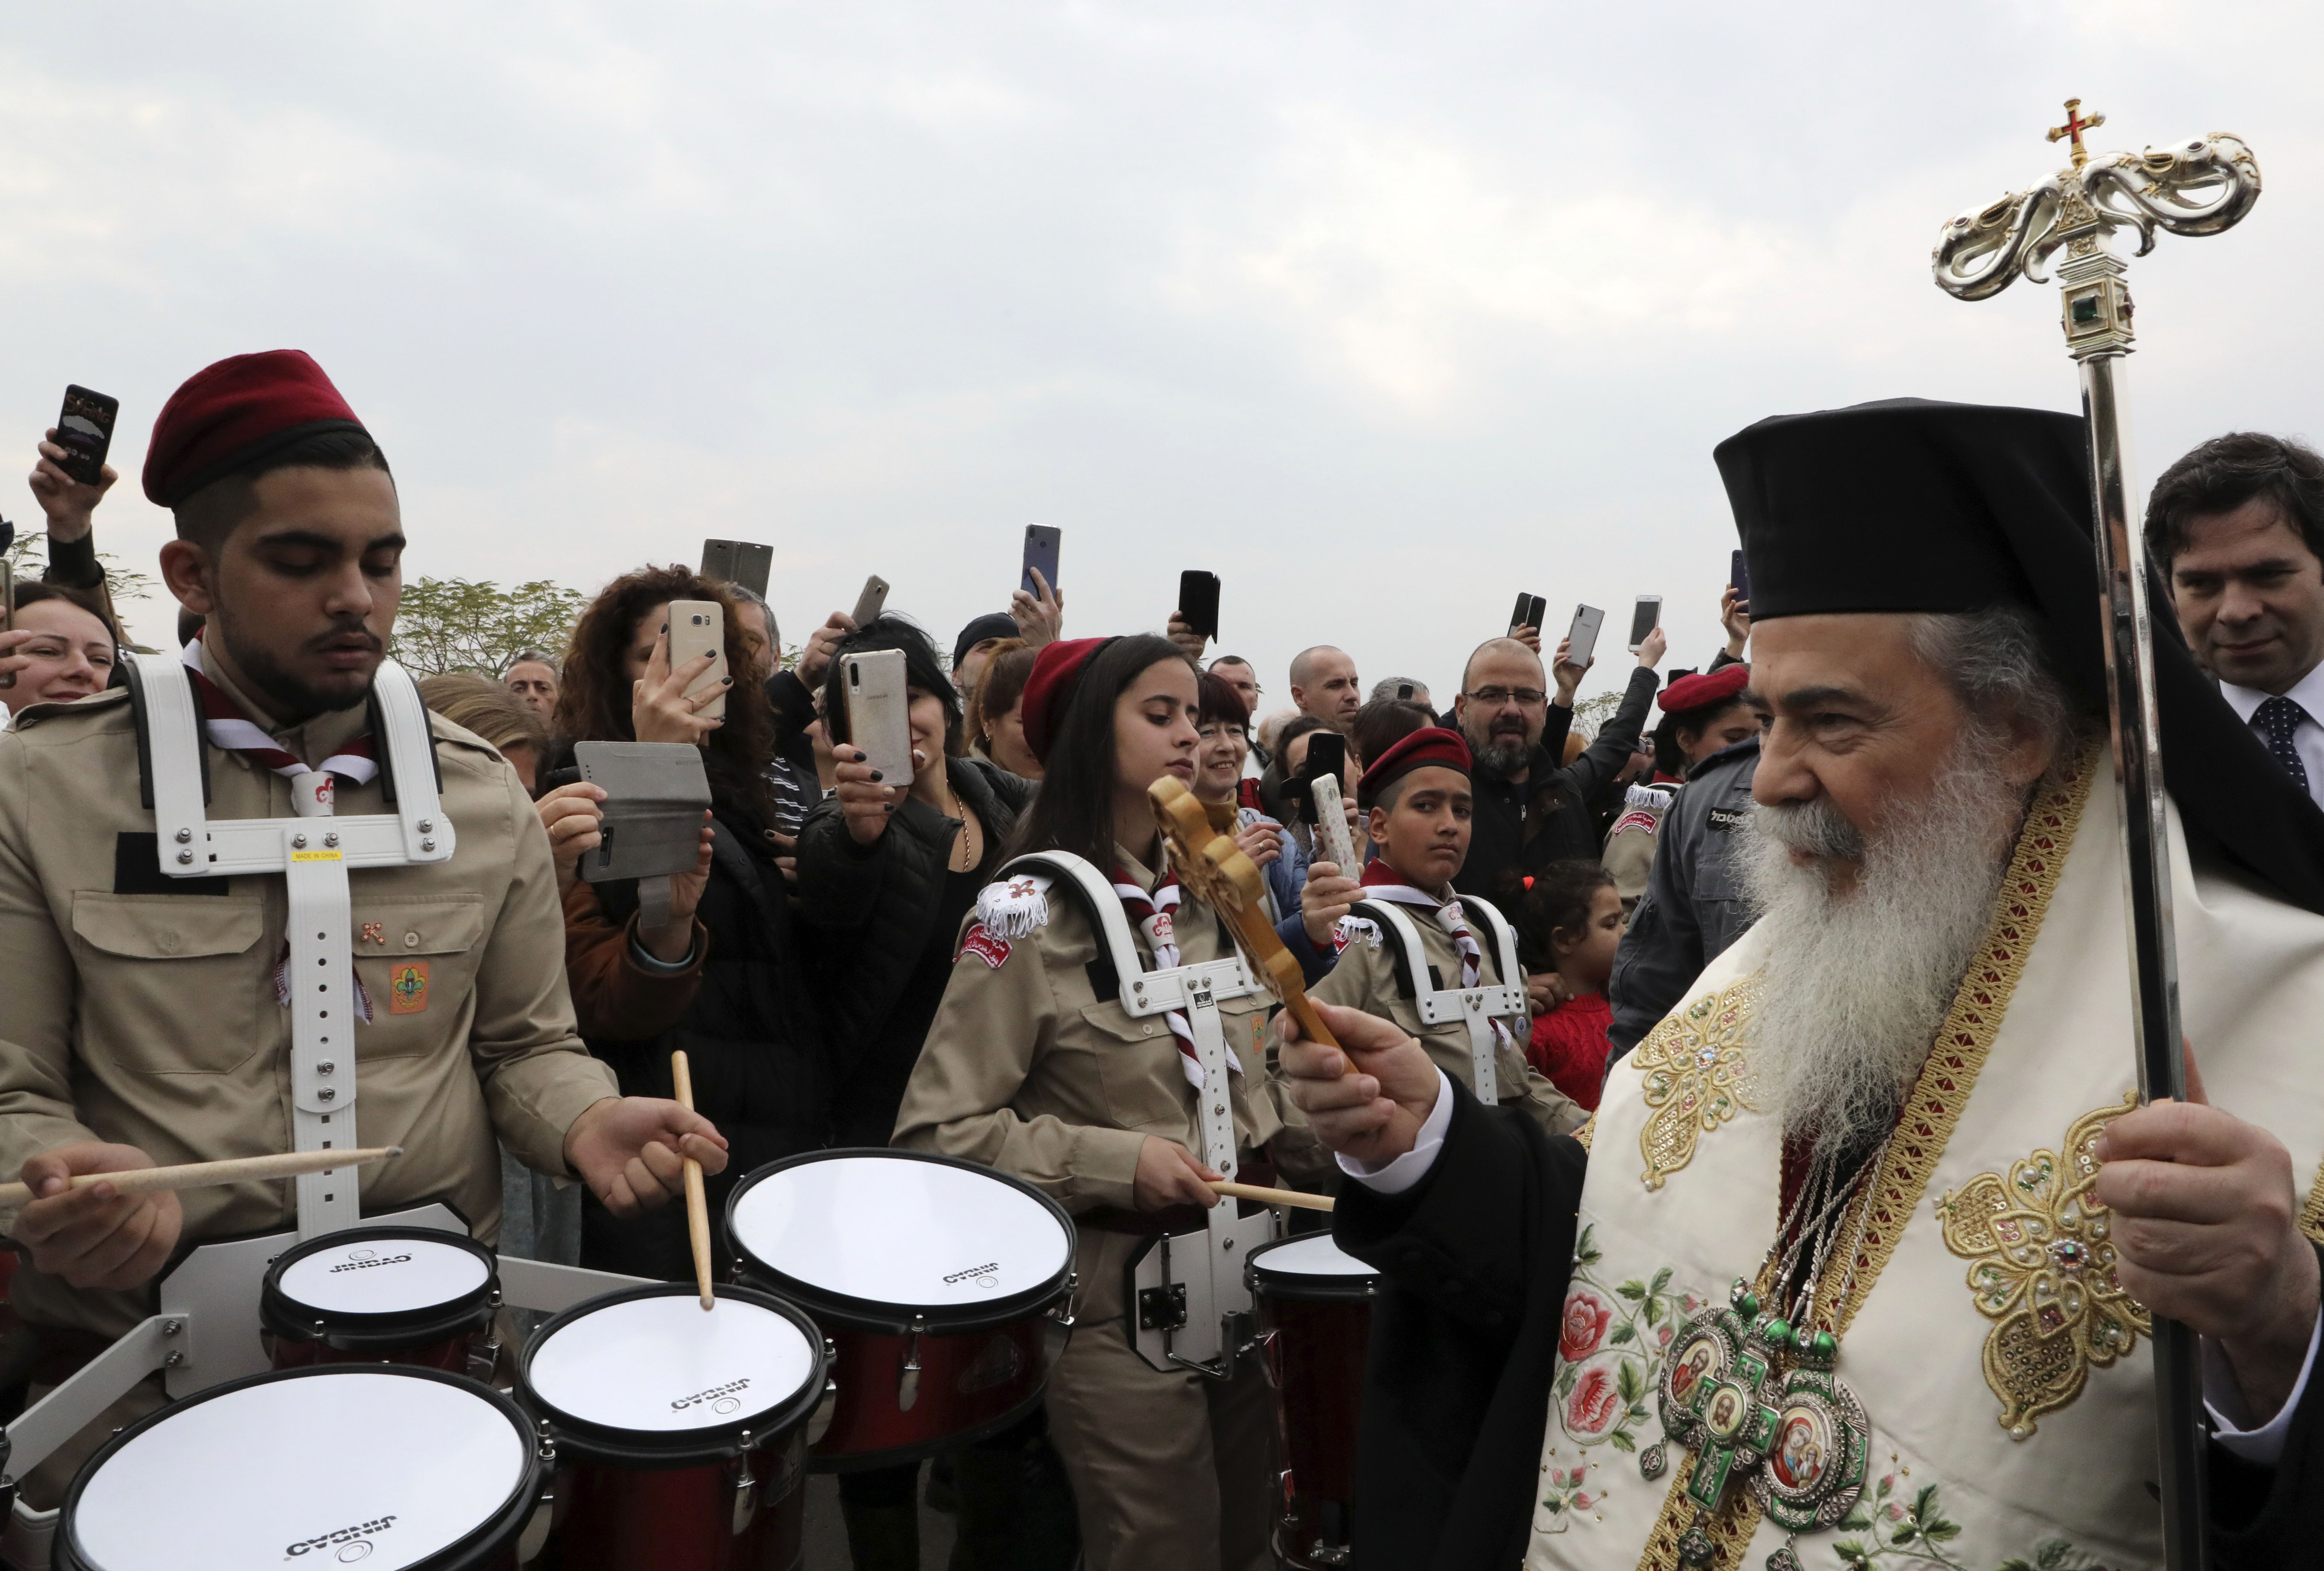 Patriarch of the Orthodox Church of Jerusalem, Theophilos III (R) arrives at Qasr al-Yahud (Photo by HAZEM BADER/AFP via Getty Images)